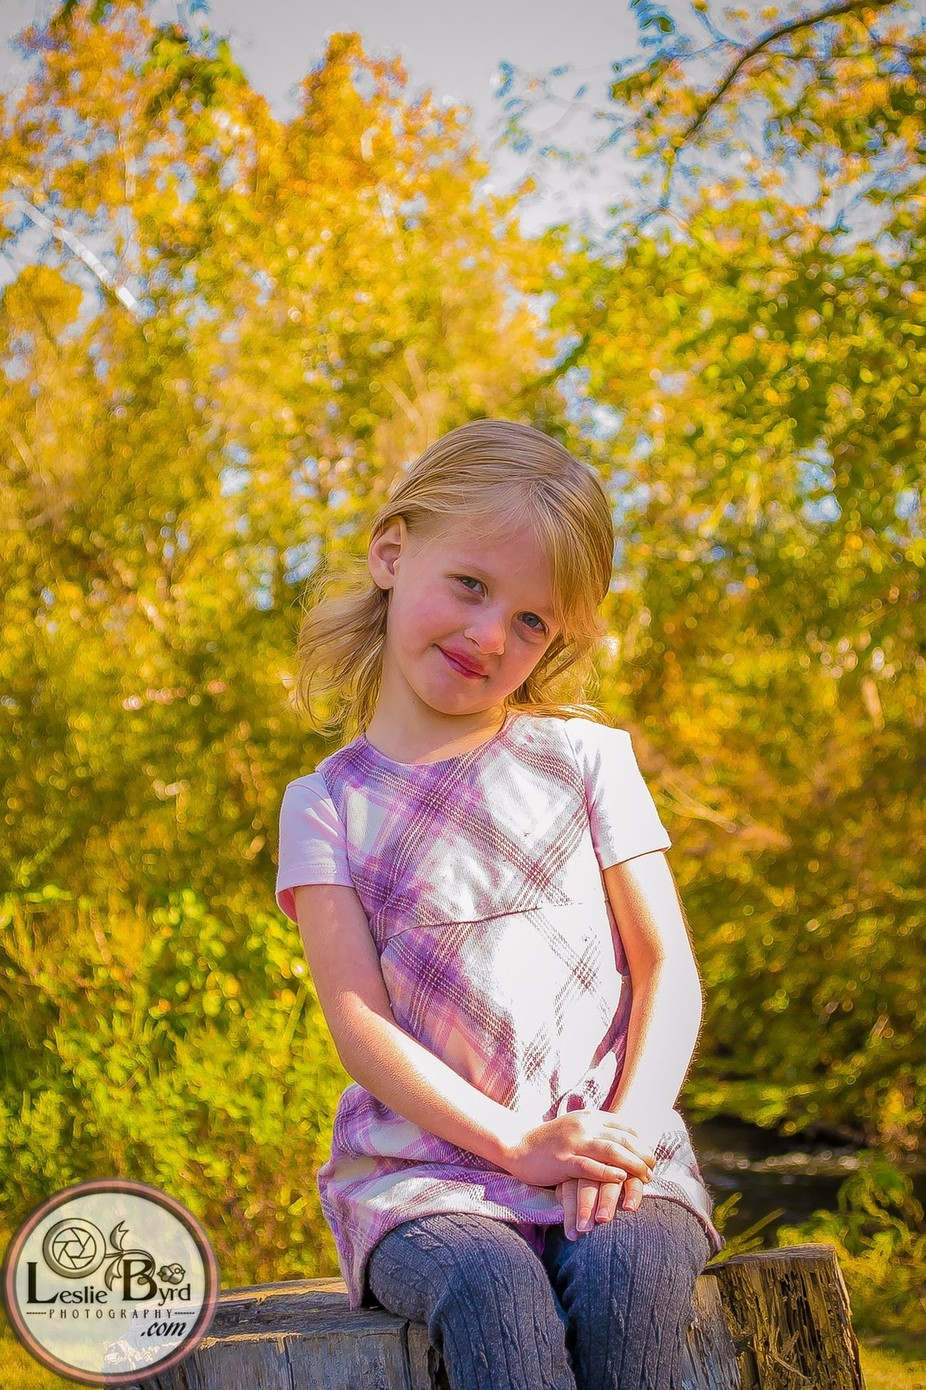 An image of one of my favorite subjects, my little girl. Image captured at a local park.